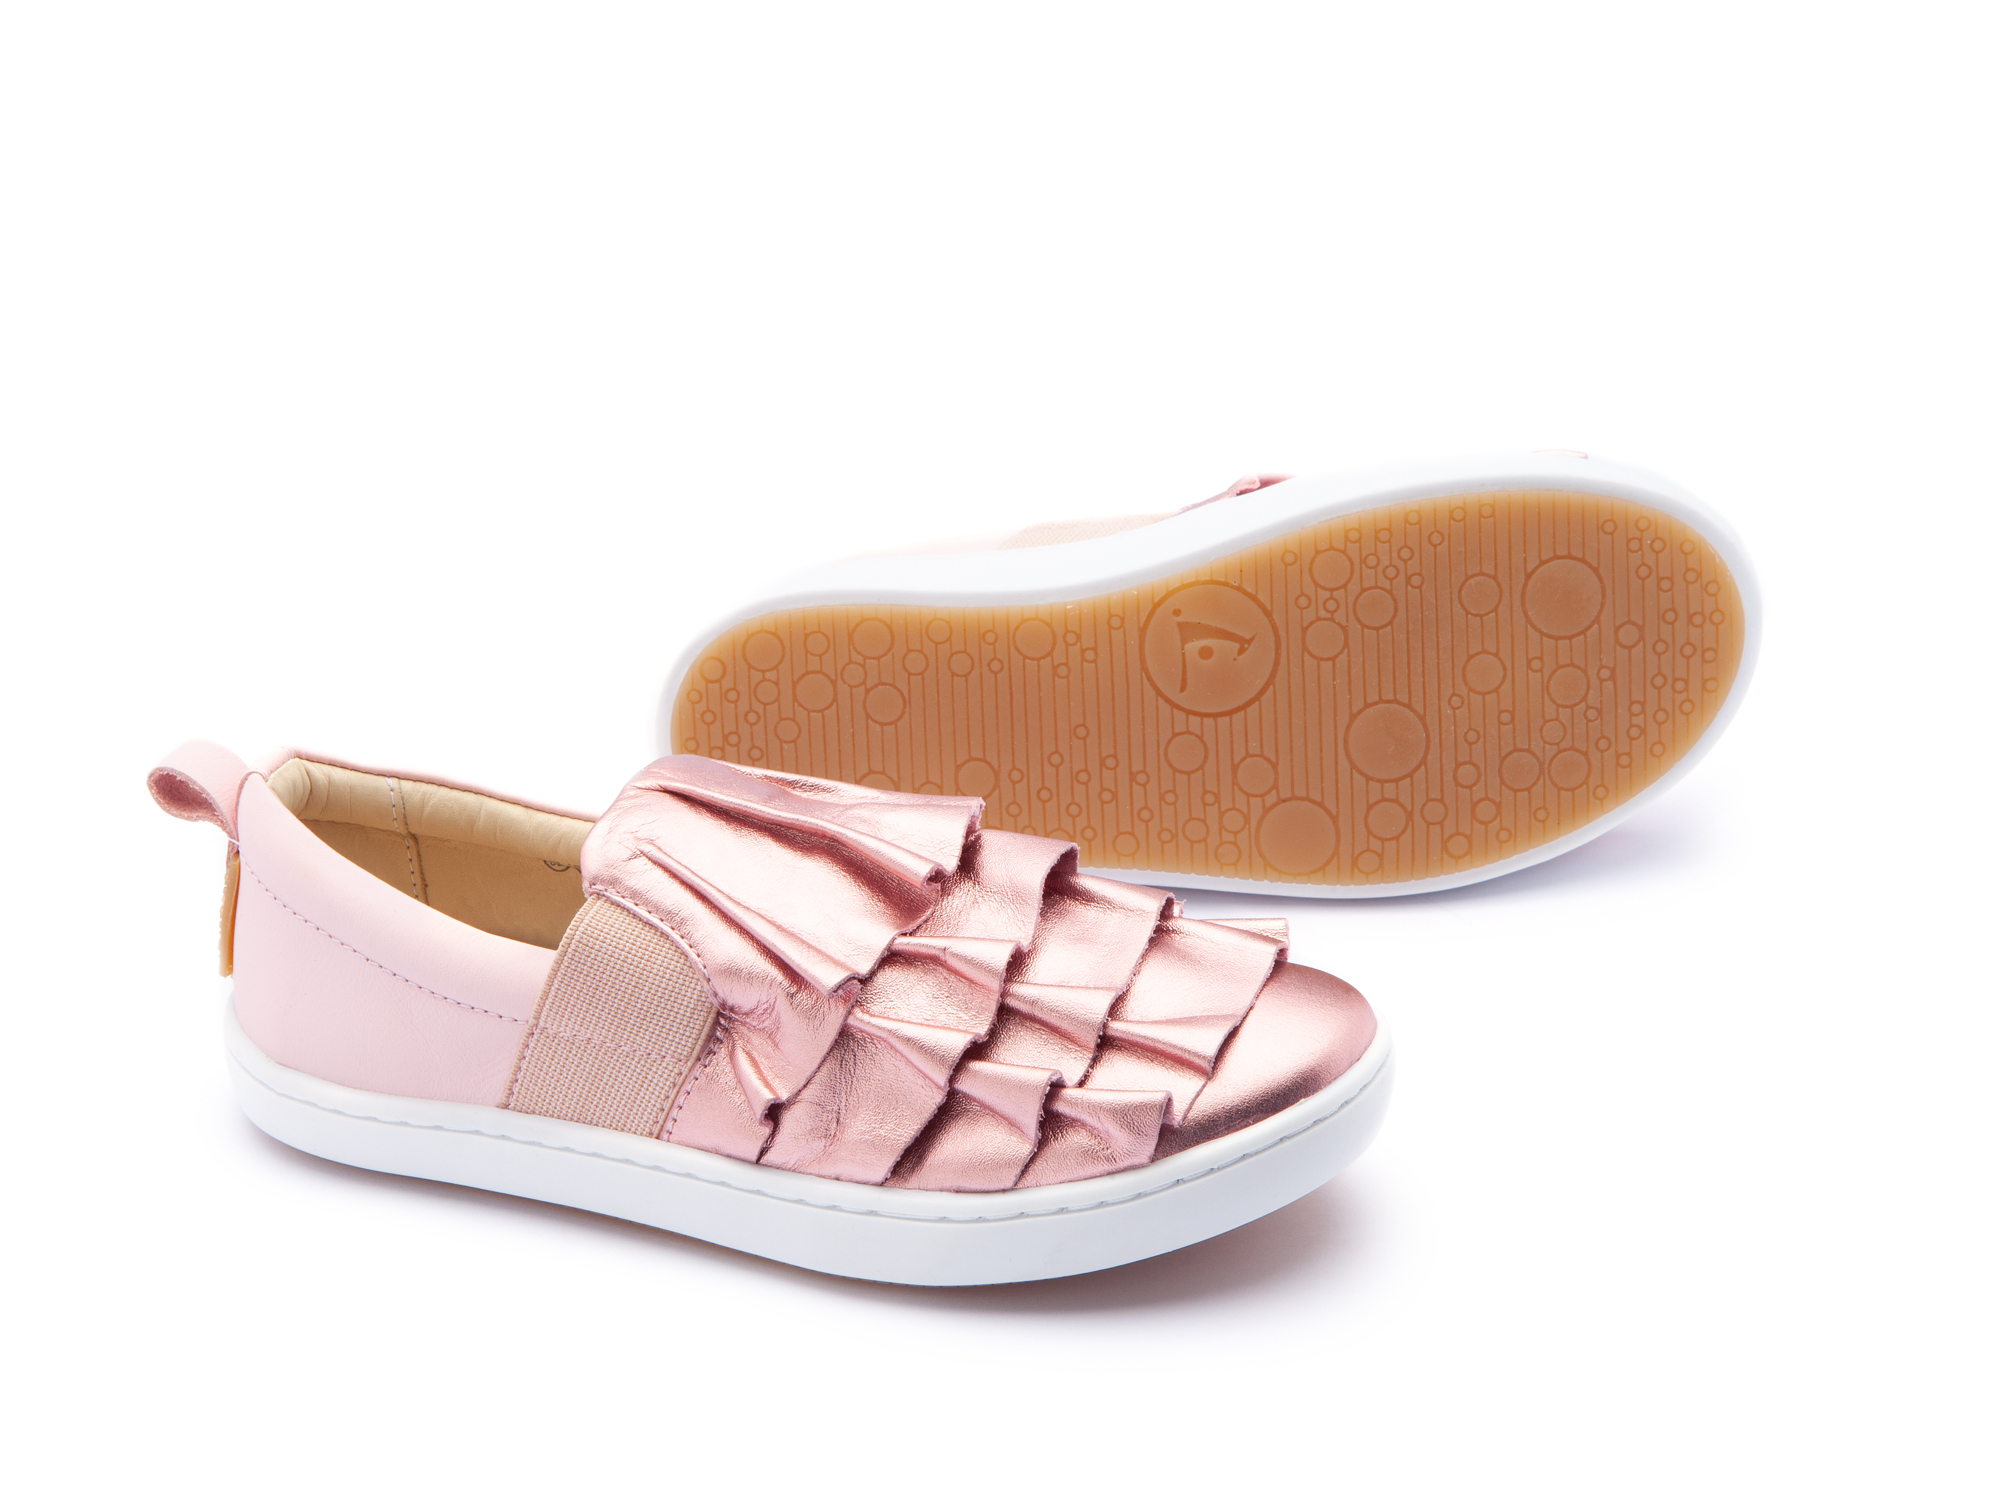 Tênis Flamenco Rose Gold/ Blossom Pink Junior 4 à 8 anos - 2